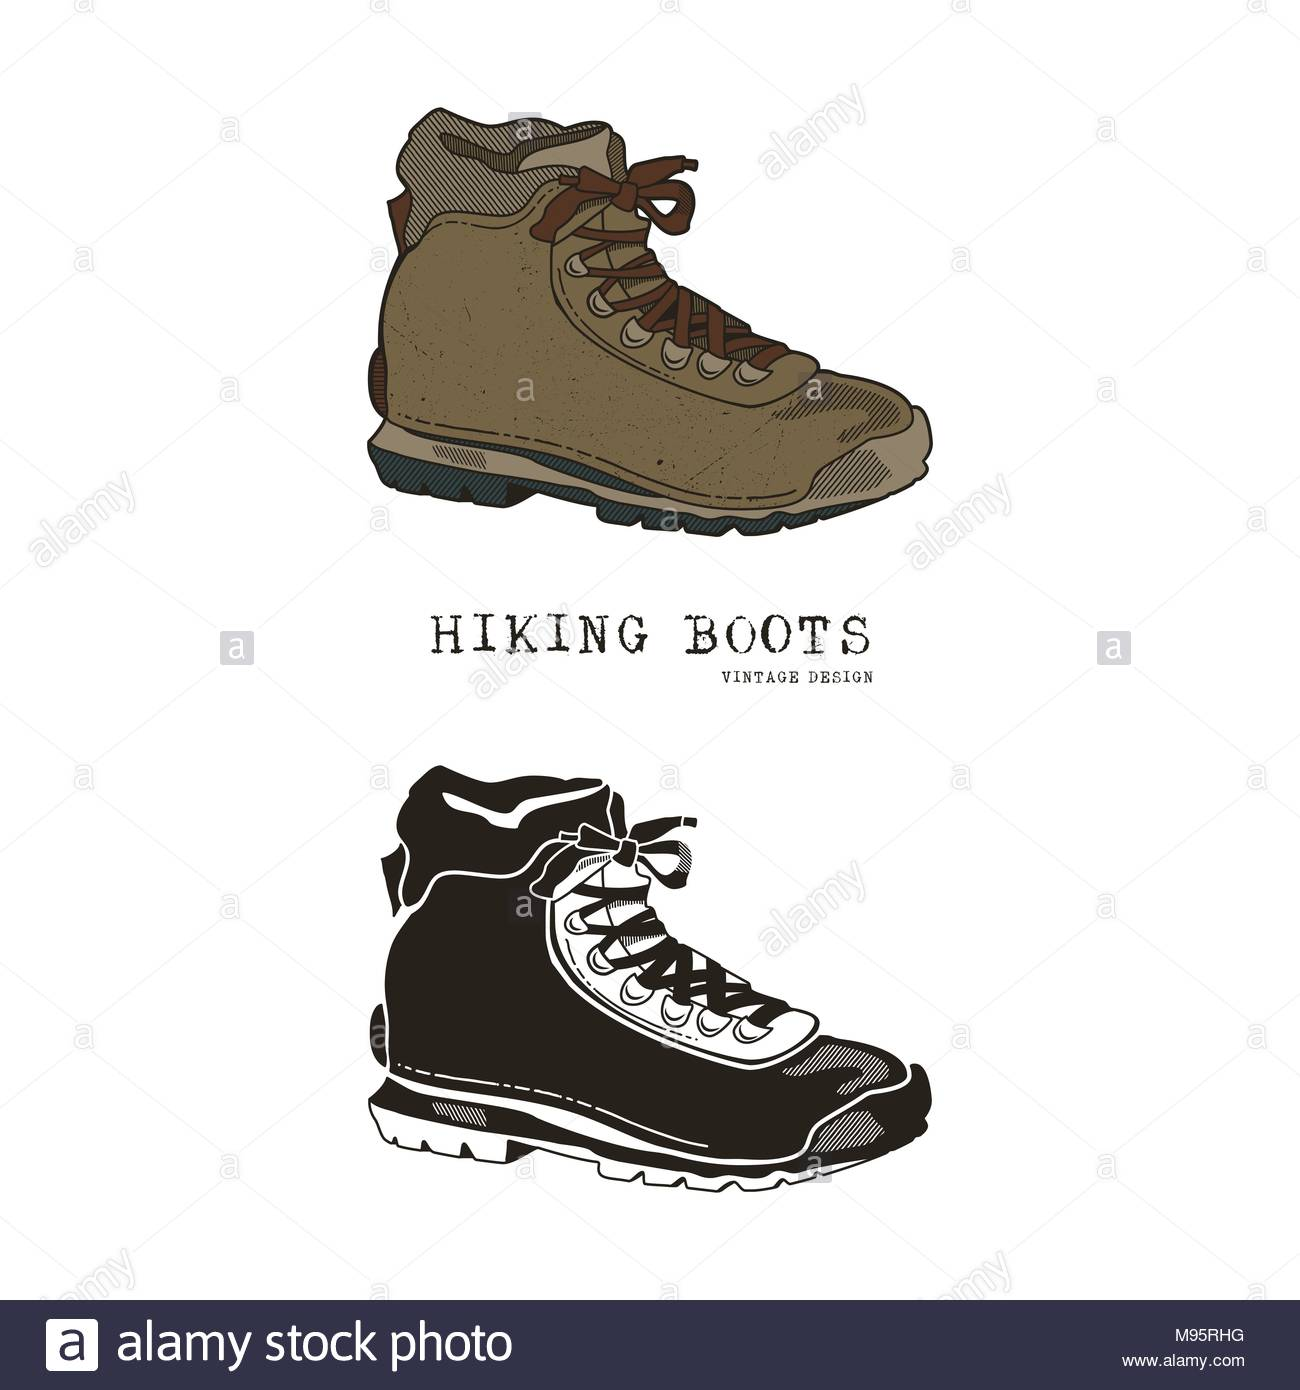 1300x1390 Hiking Boots Stock Vector Images